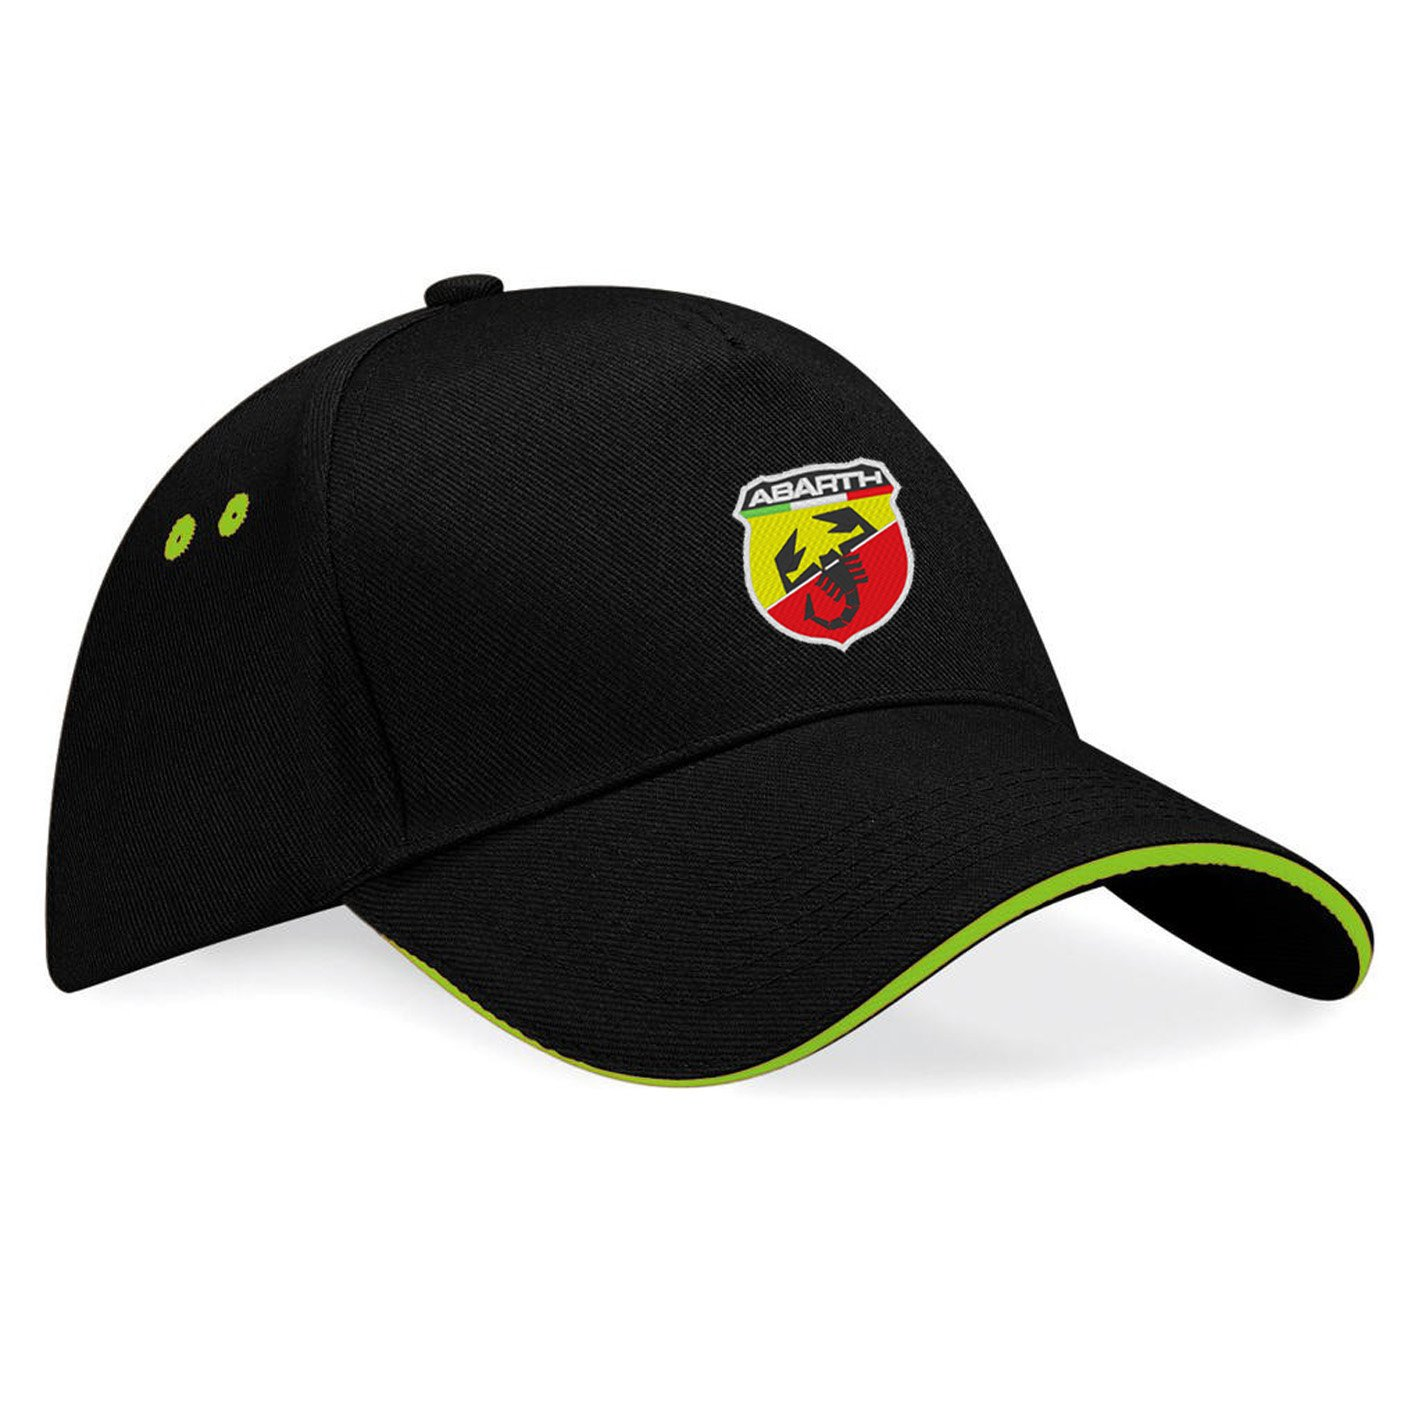 avstickerei Abarth Fiat Embroidered Baseball Cap, Really Premium Quality -k096